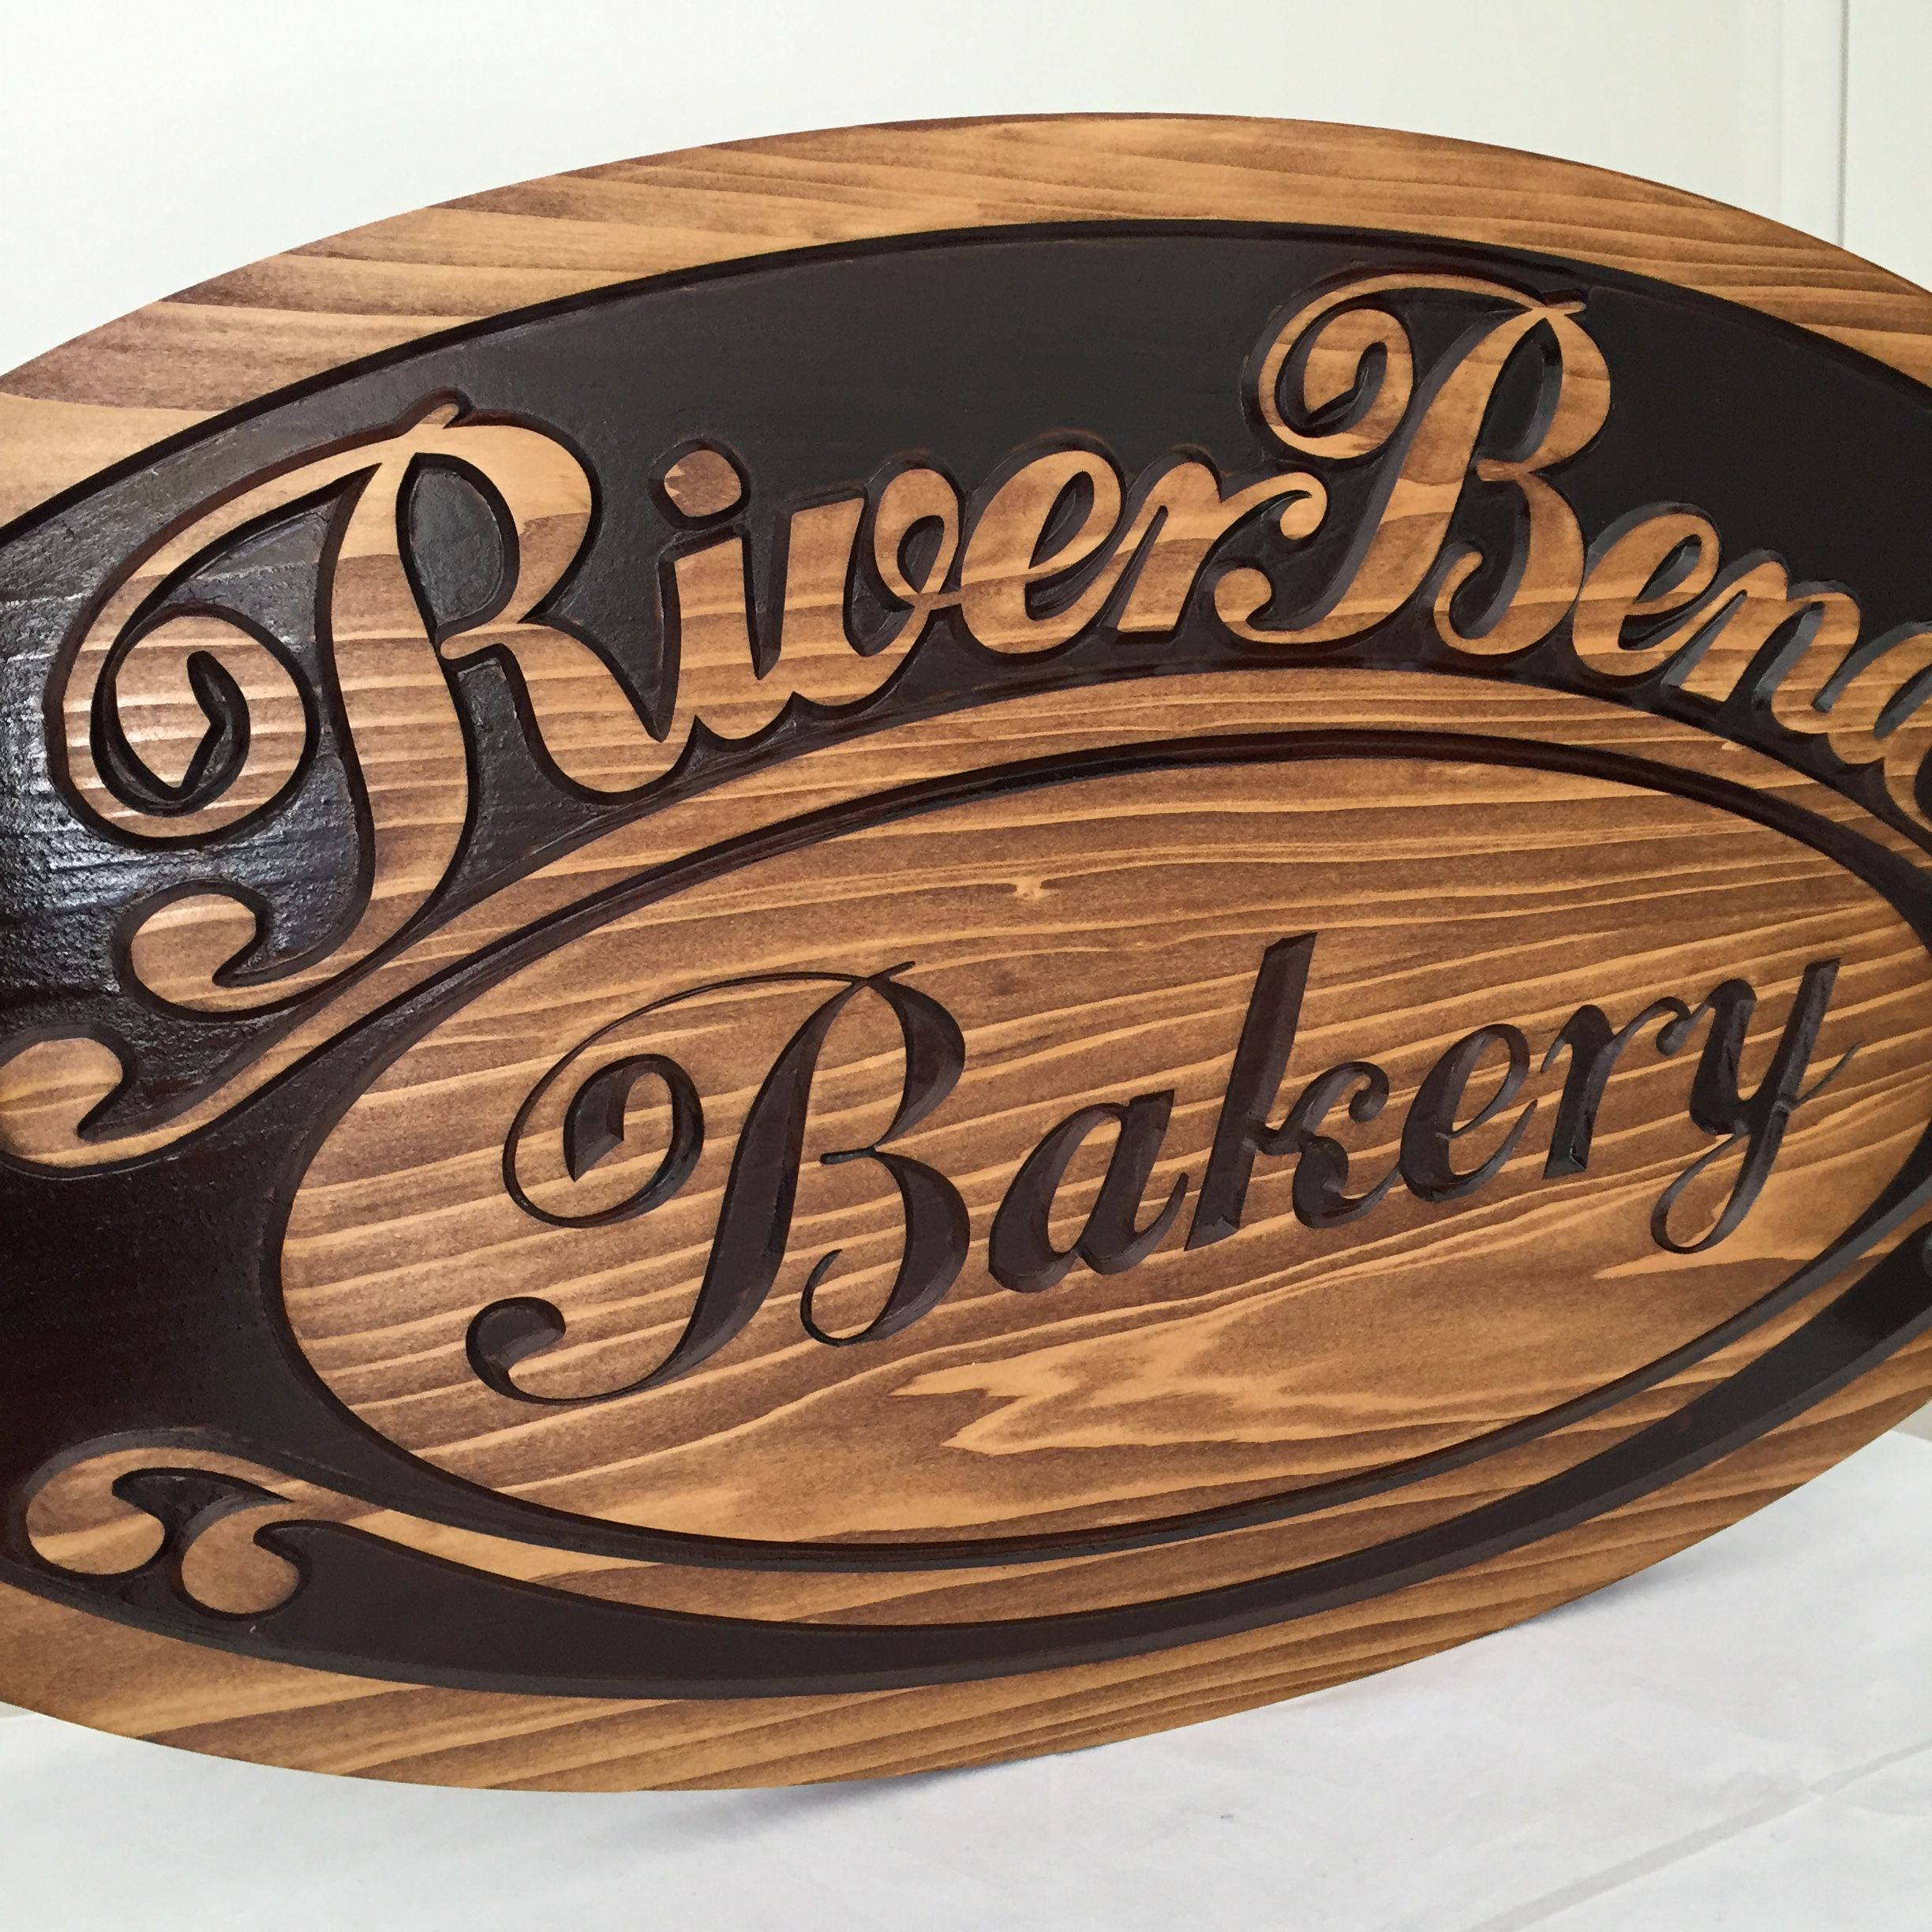 Wooden carved outdoor business logo sign two tone stain ...